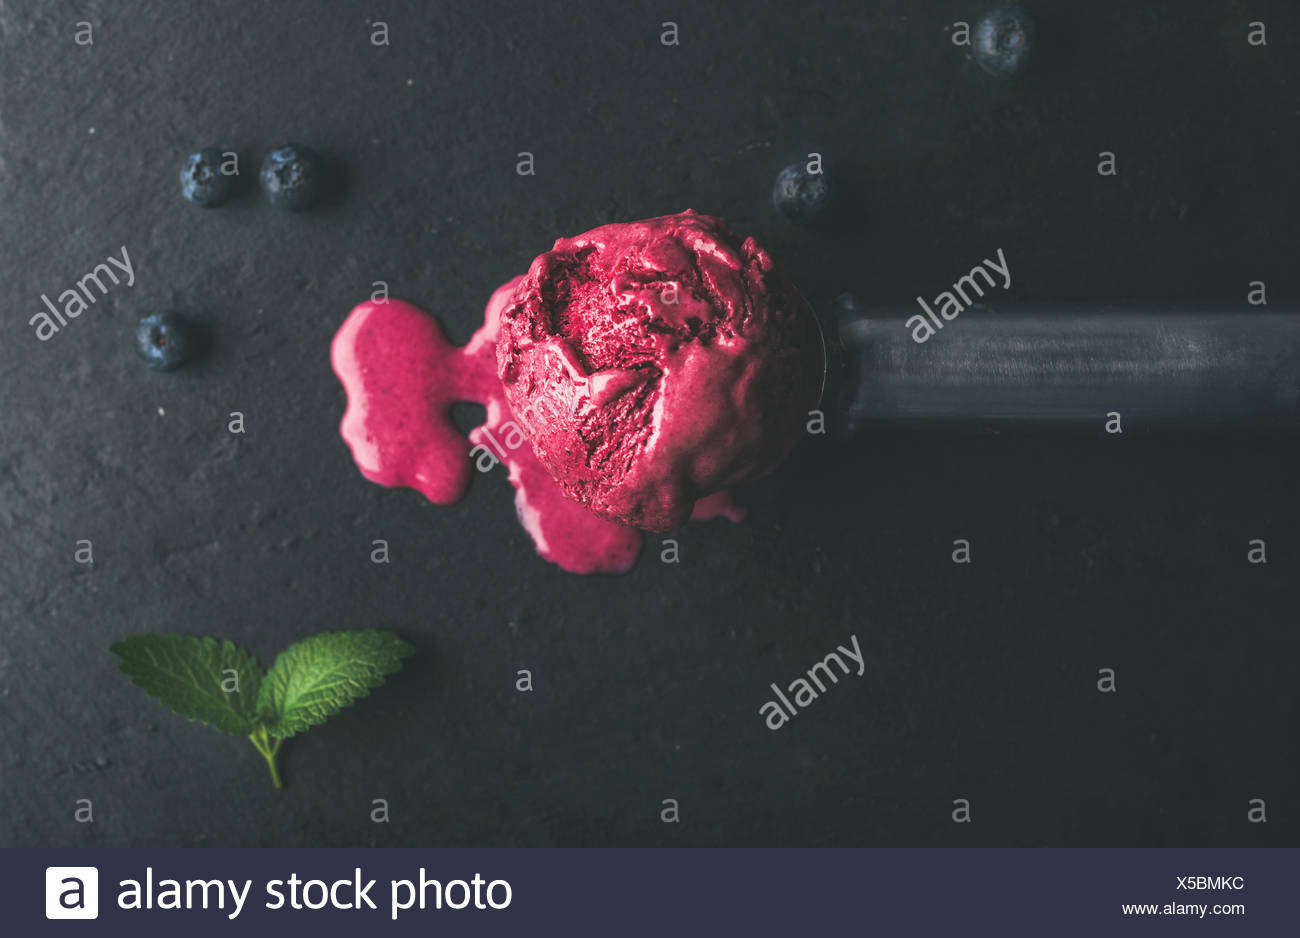 Melting scoop of blueberry ice-cream with mint leaves over black slate stone background, top view, selective focus, horizontal composition - Stock Image